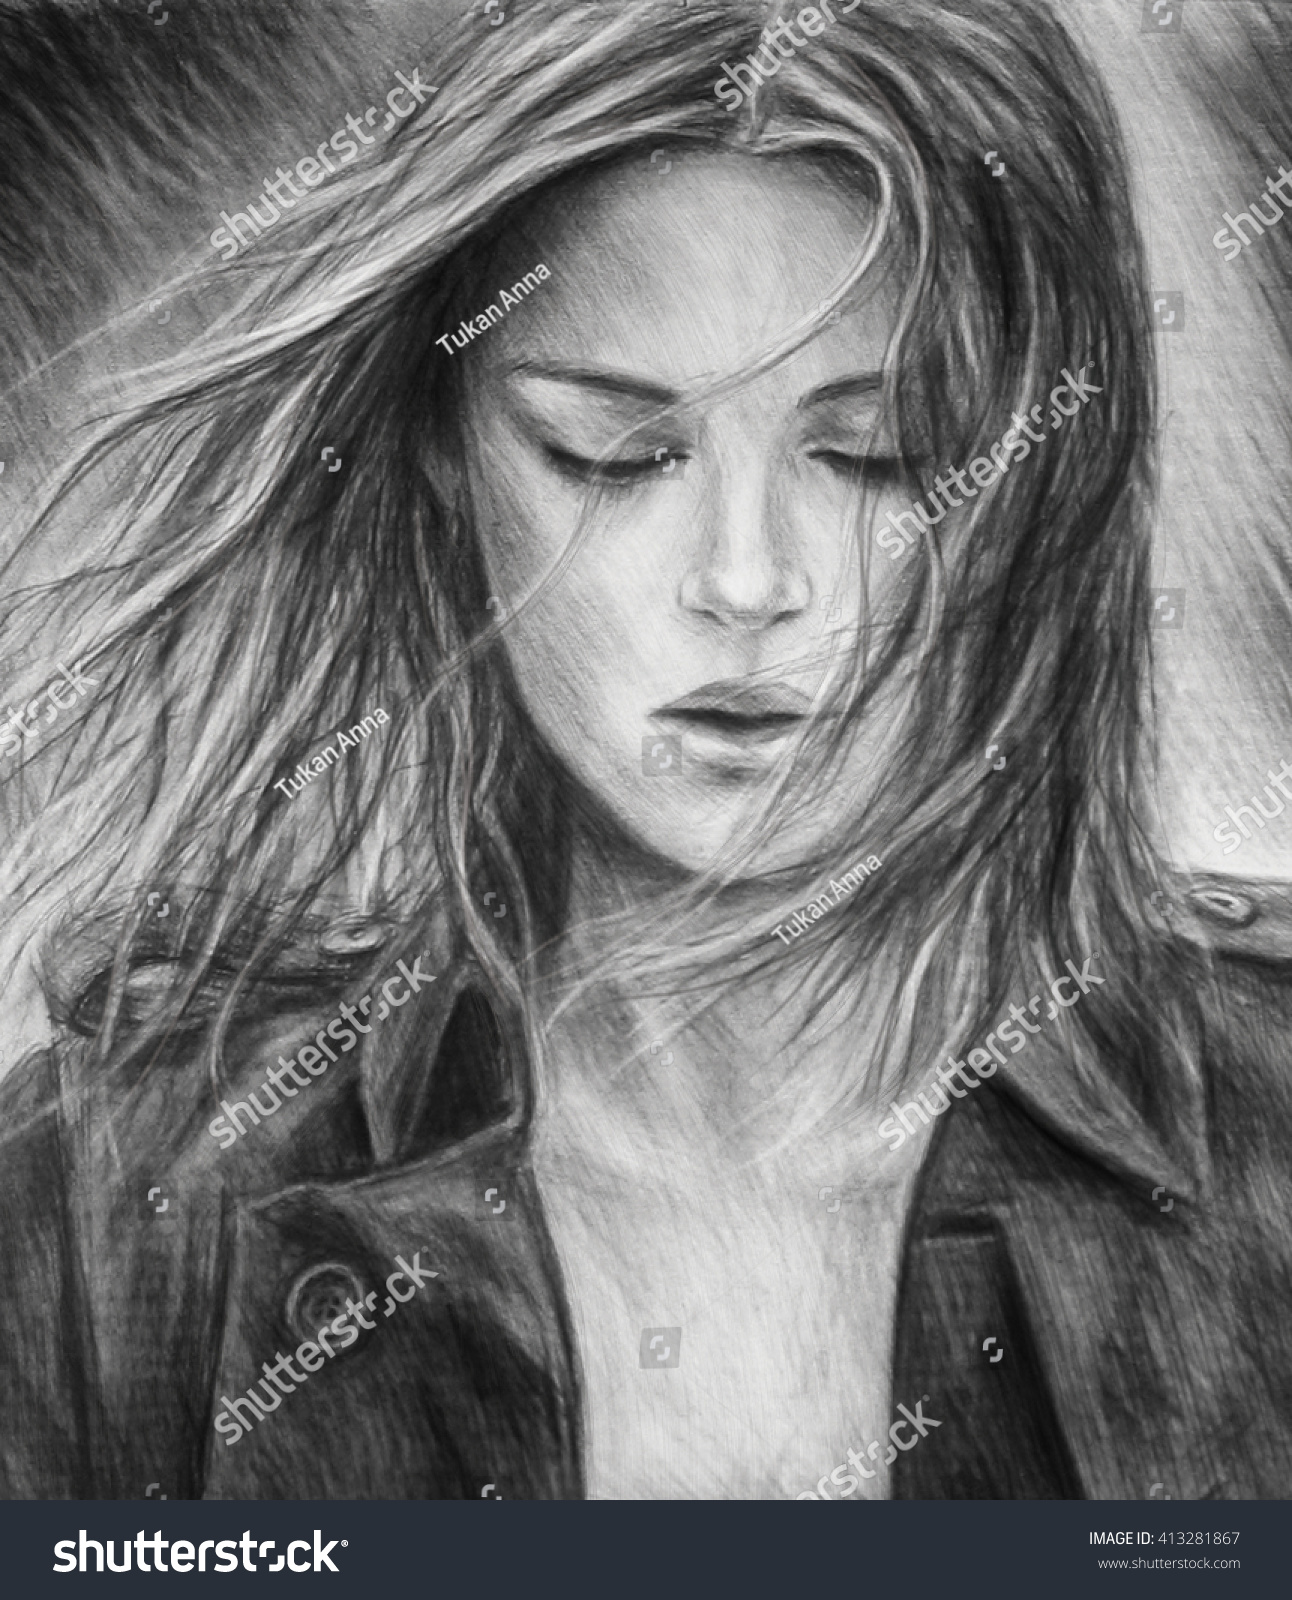 The girl pencil drawing a charcoal drawing black and white portrait of